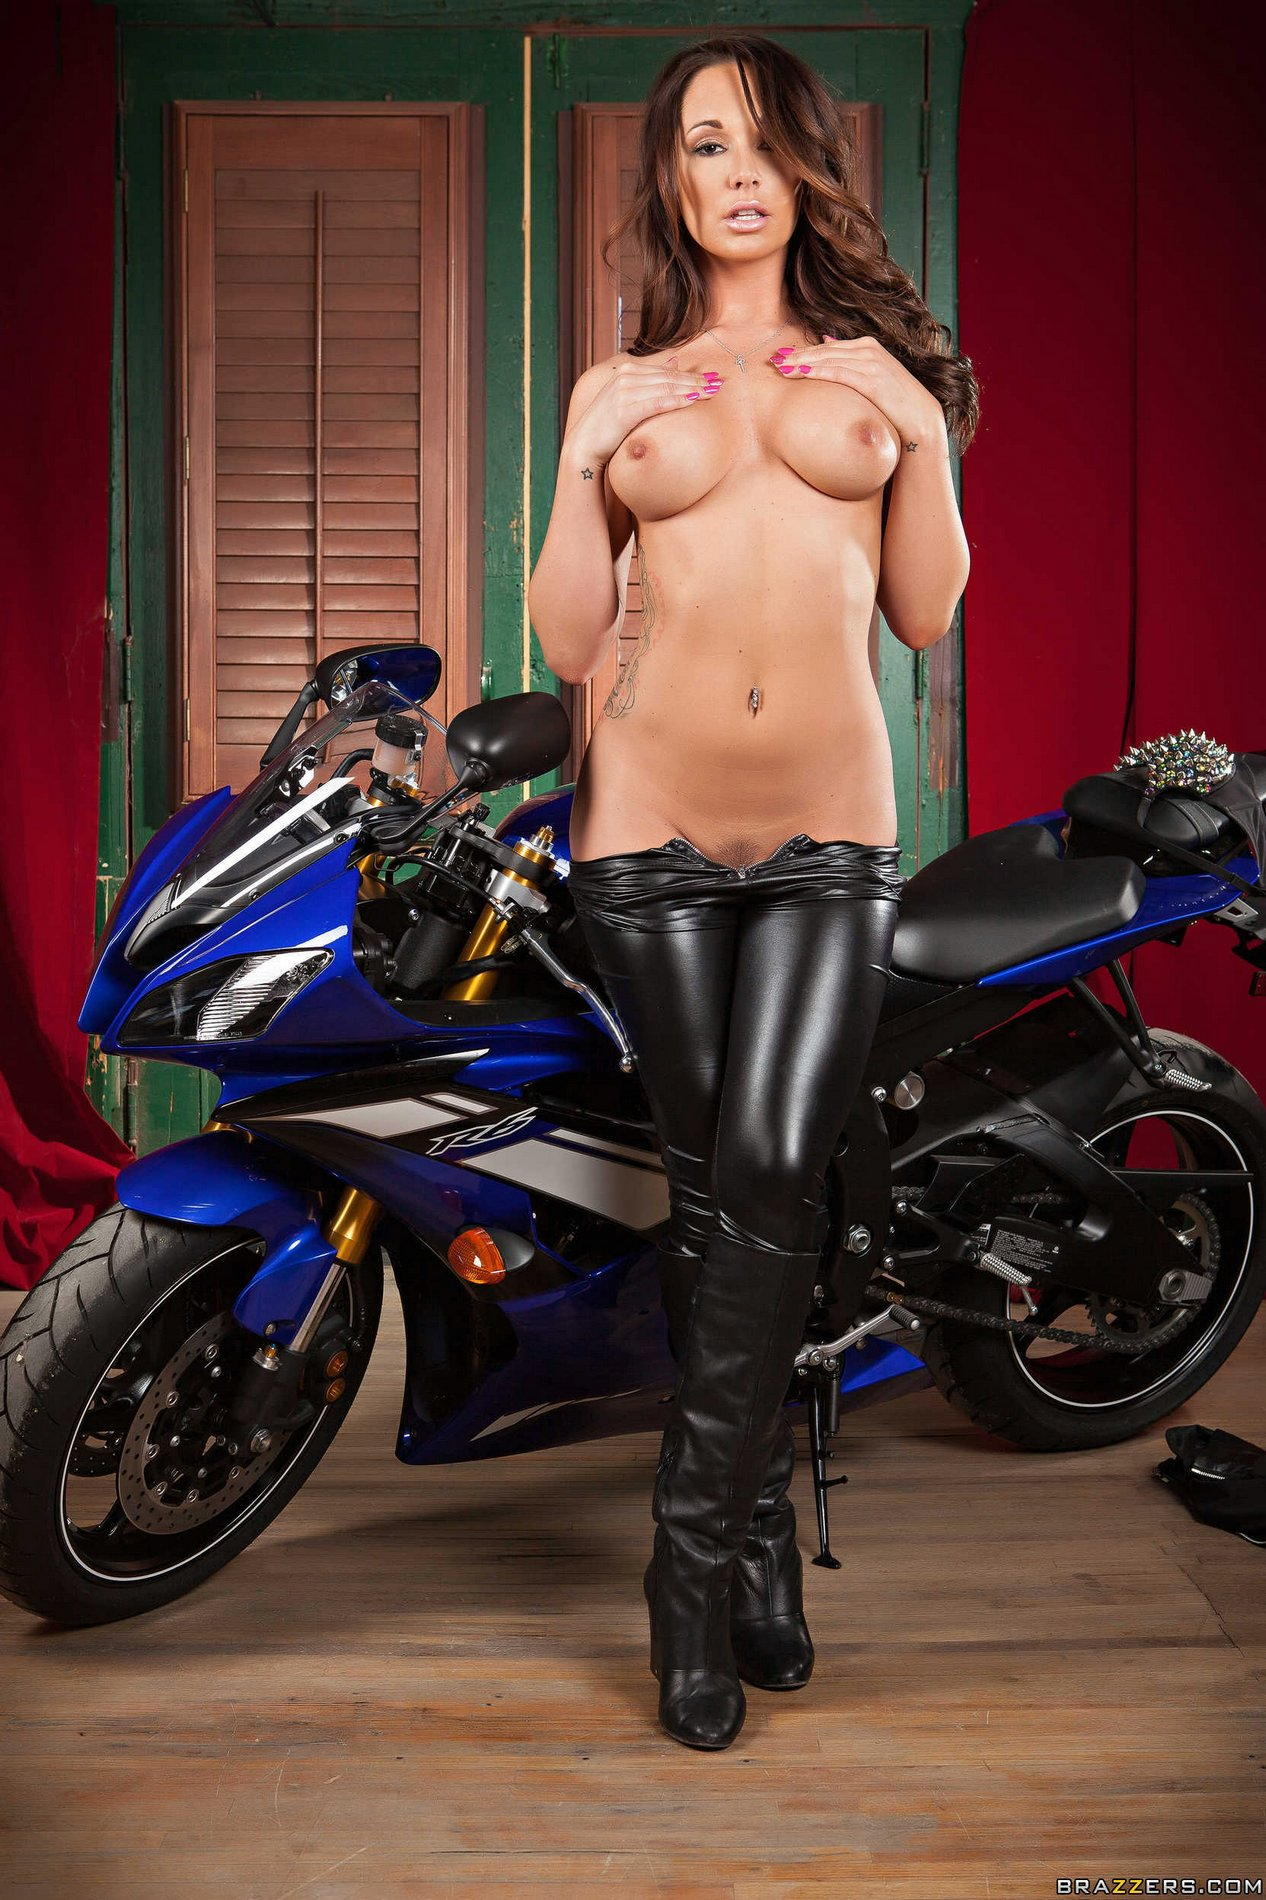 Destiny Dixon In Black High Boots Poses With A Motorcycle -4733